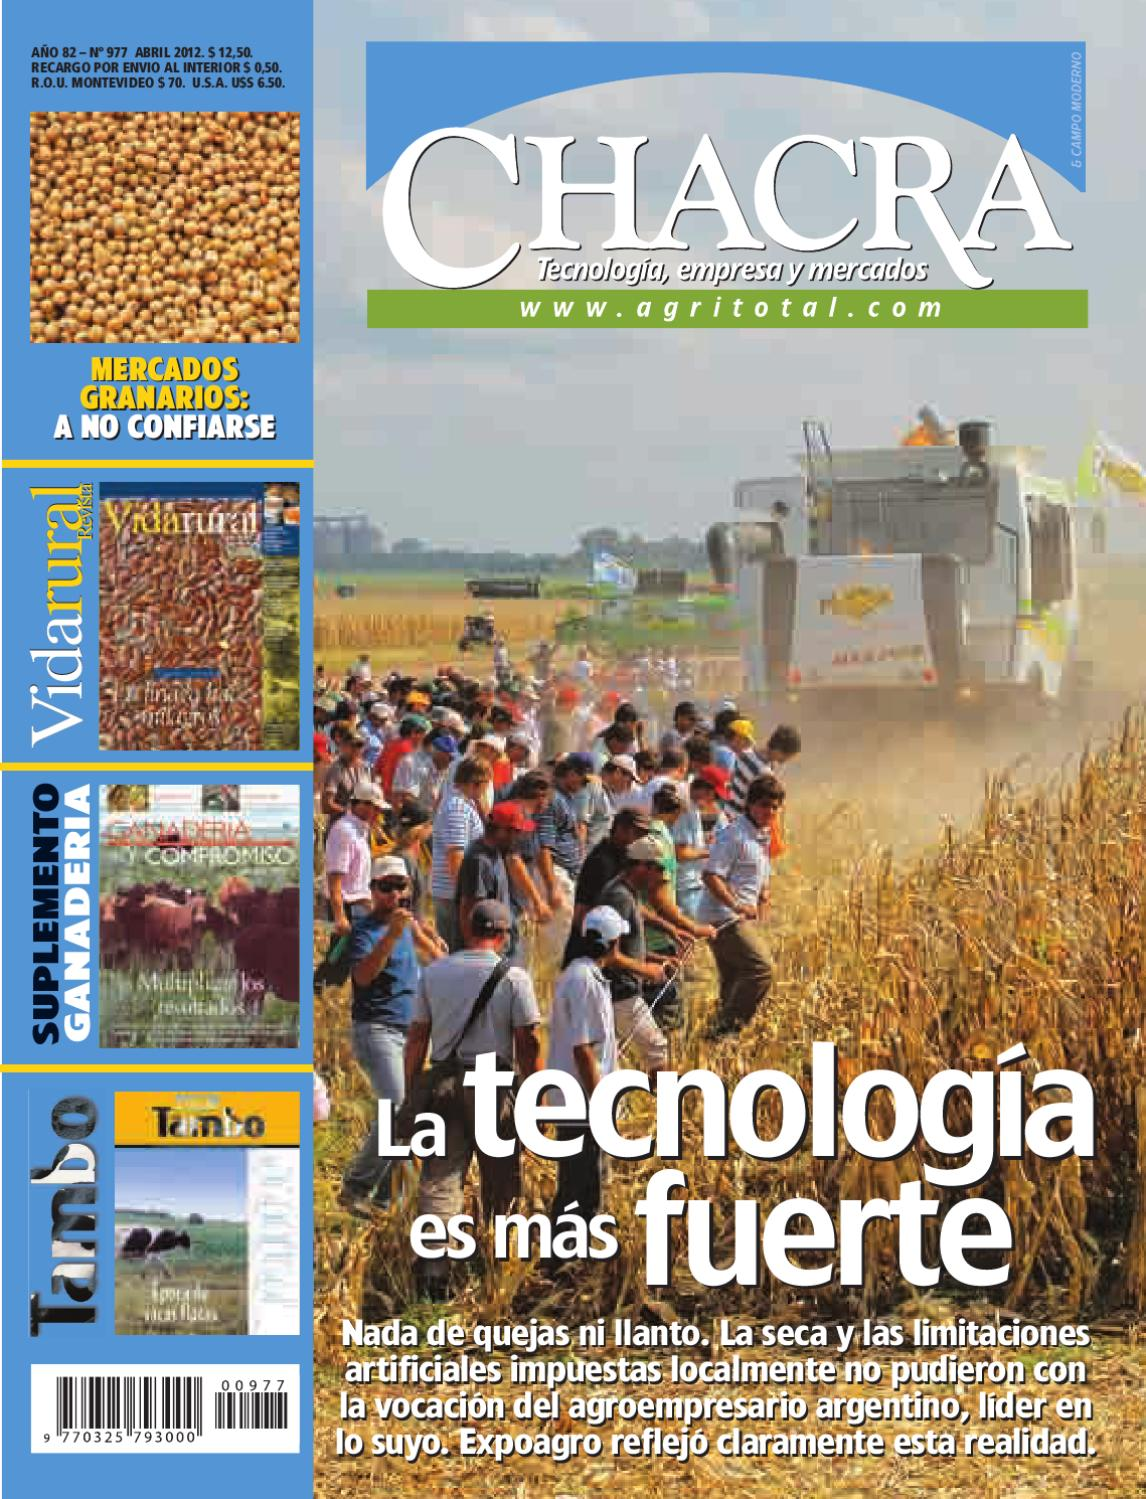 Revista Chacra Nº 977 - Abril 2012 by Revista Chacra - issuu 30b12a49a06